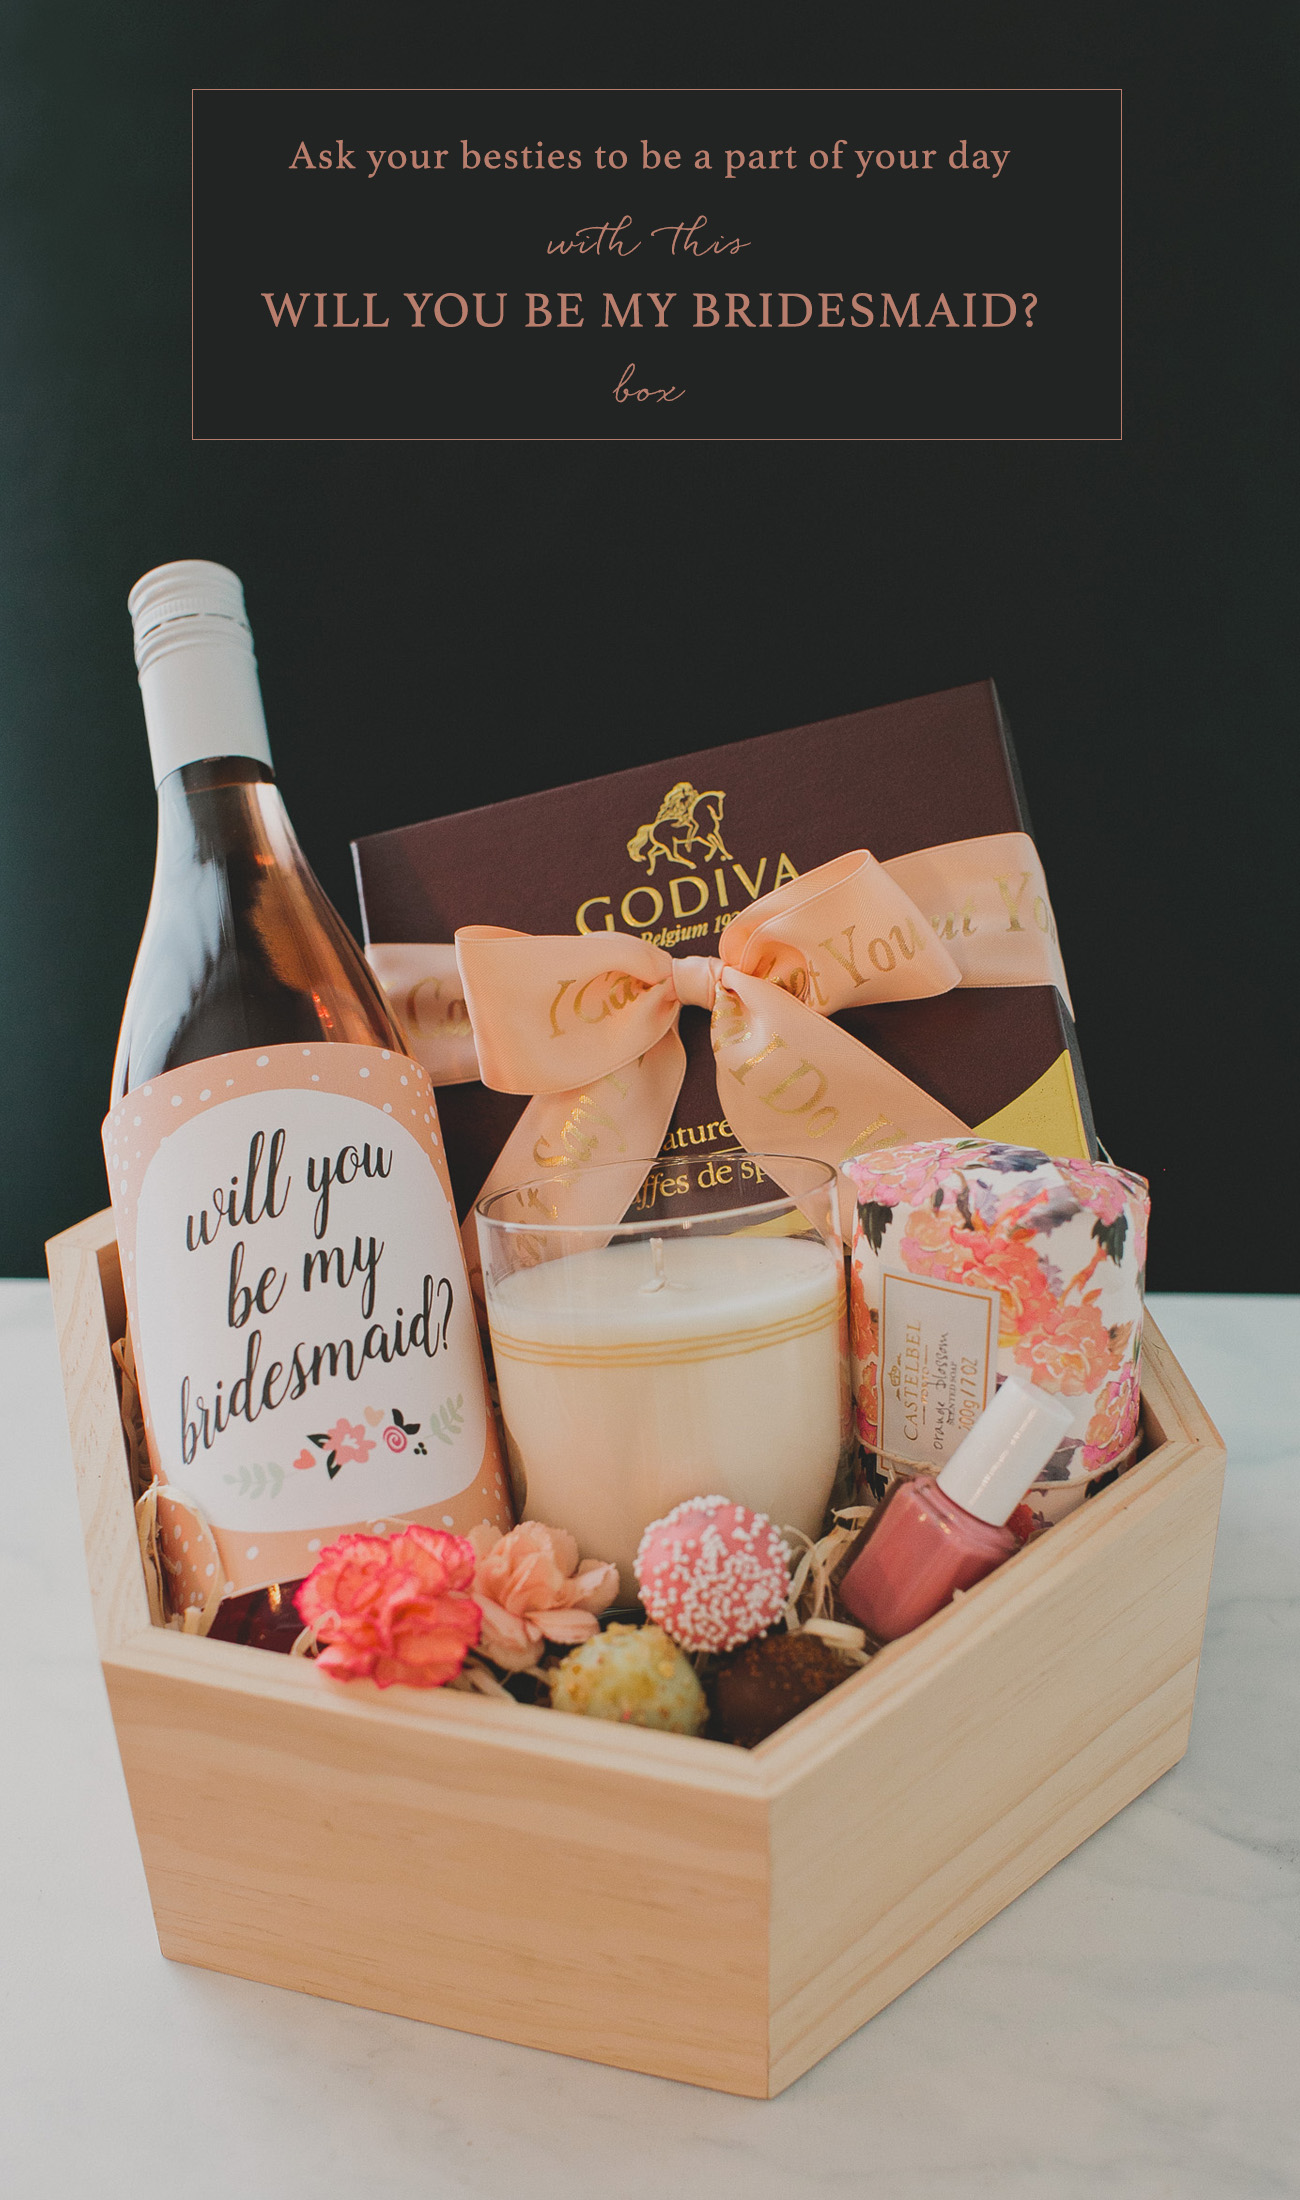 Diy bridesmaid gift box with godiva green wedding shoes for Bride gifts from bridesmaid